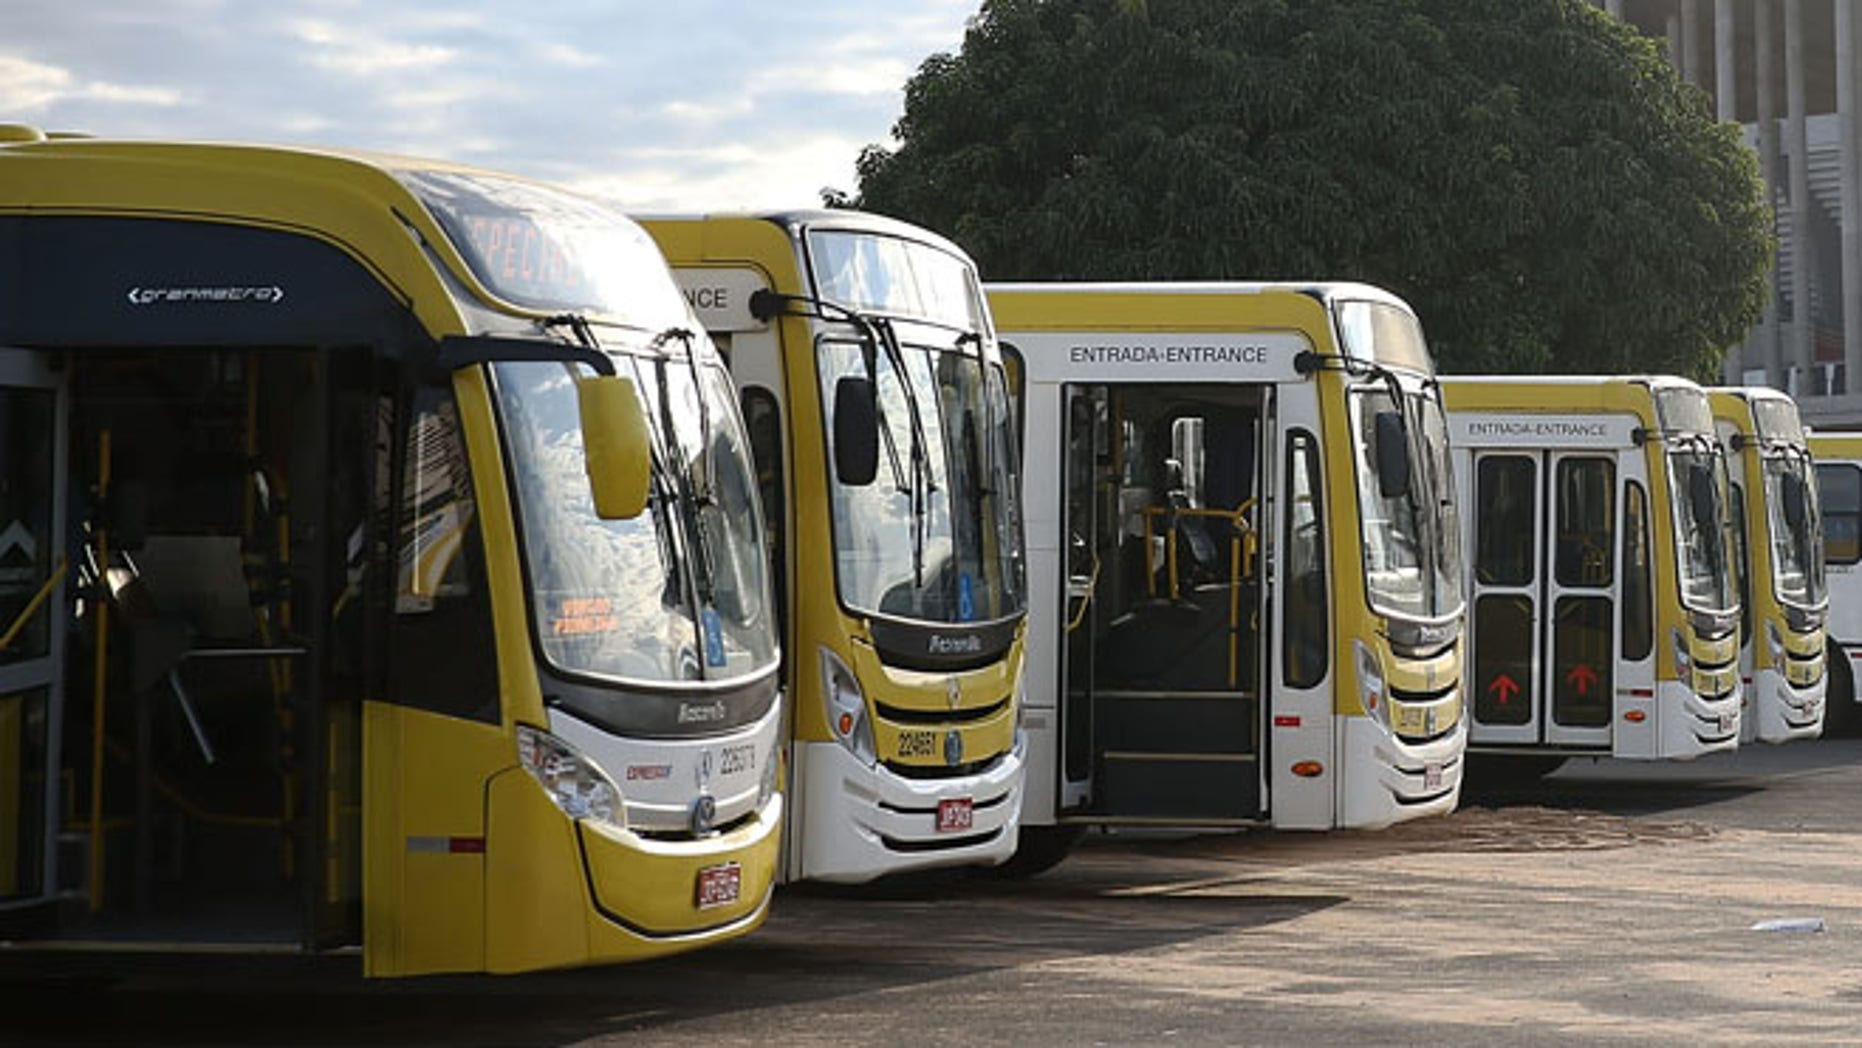 BRASILIA, BRAZIL - JUNE 03:  Buses are parked in front of the 72,000-seat Mane Garrincha Stadium, which is now used primarily as a municipal bus parking lot, on June 3, 2015 in Brasilia, Brazil. Brazil constructed a number of expensive stadiums for the 2014 FIFA World Cup which now sit mostly empty in part because there is no popular local team to draw attendance.  (Photo by Mario Tama/Getty Images)